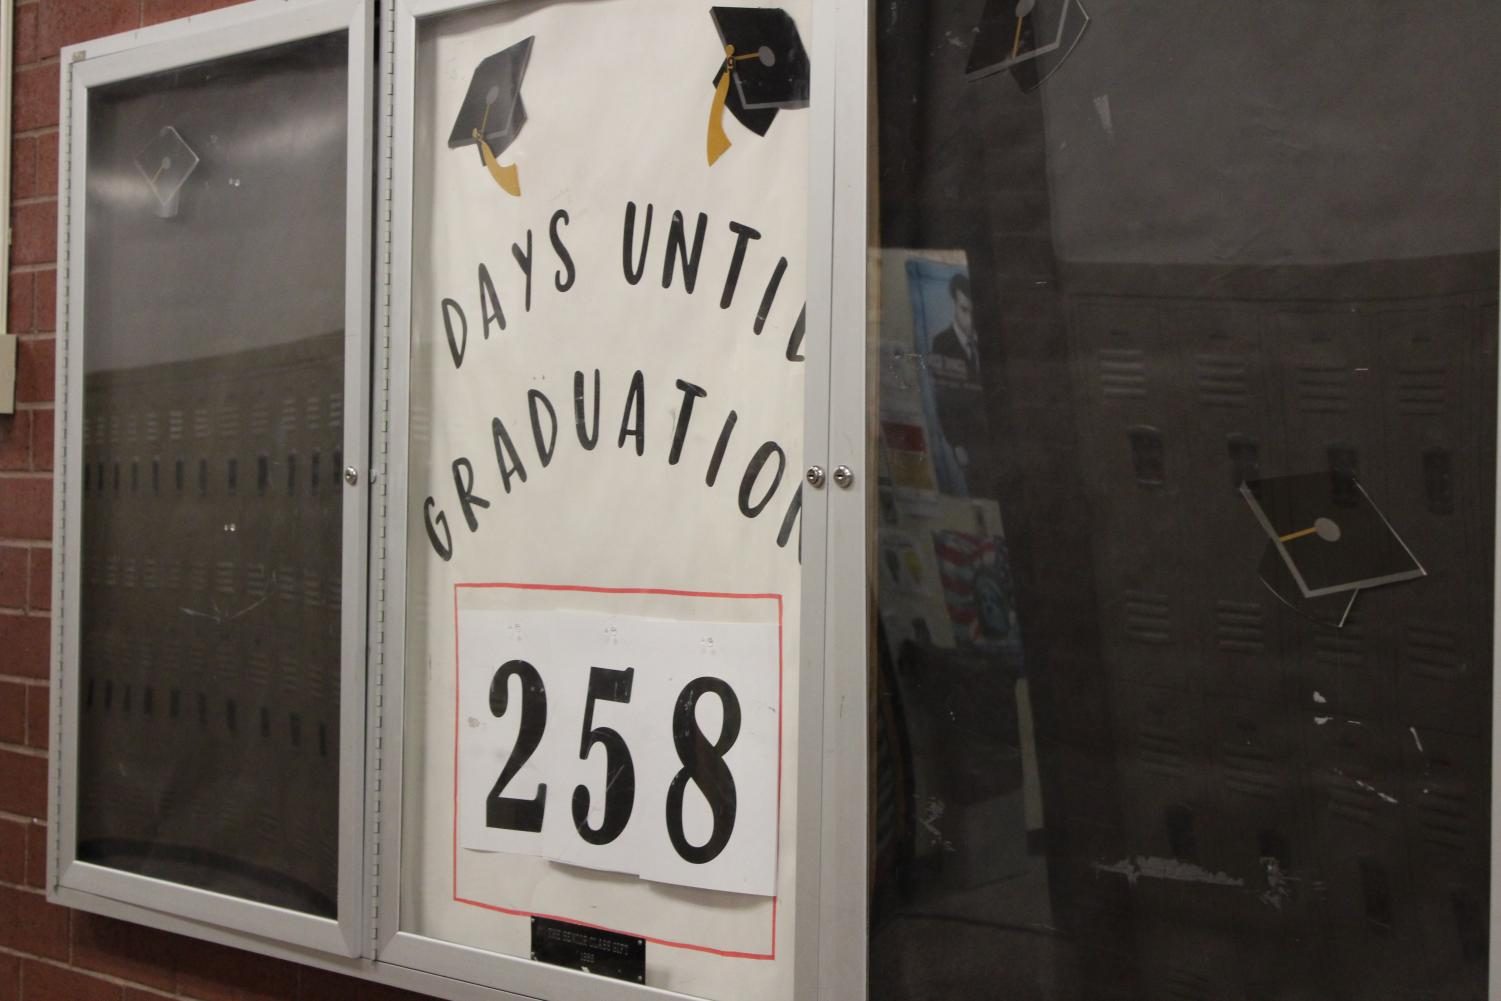 The+countdown+continues+for+graduation.+Currently%2C+there+are+256+days+until+May+18th.+%E2%80%9CI+am+ready+to+graduate%2C%E2%80%9D+said+senior+Victoria+Quigley.+